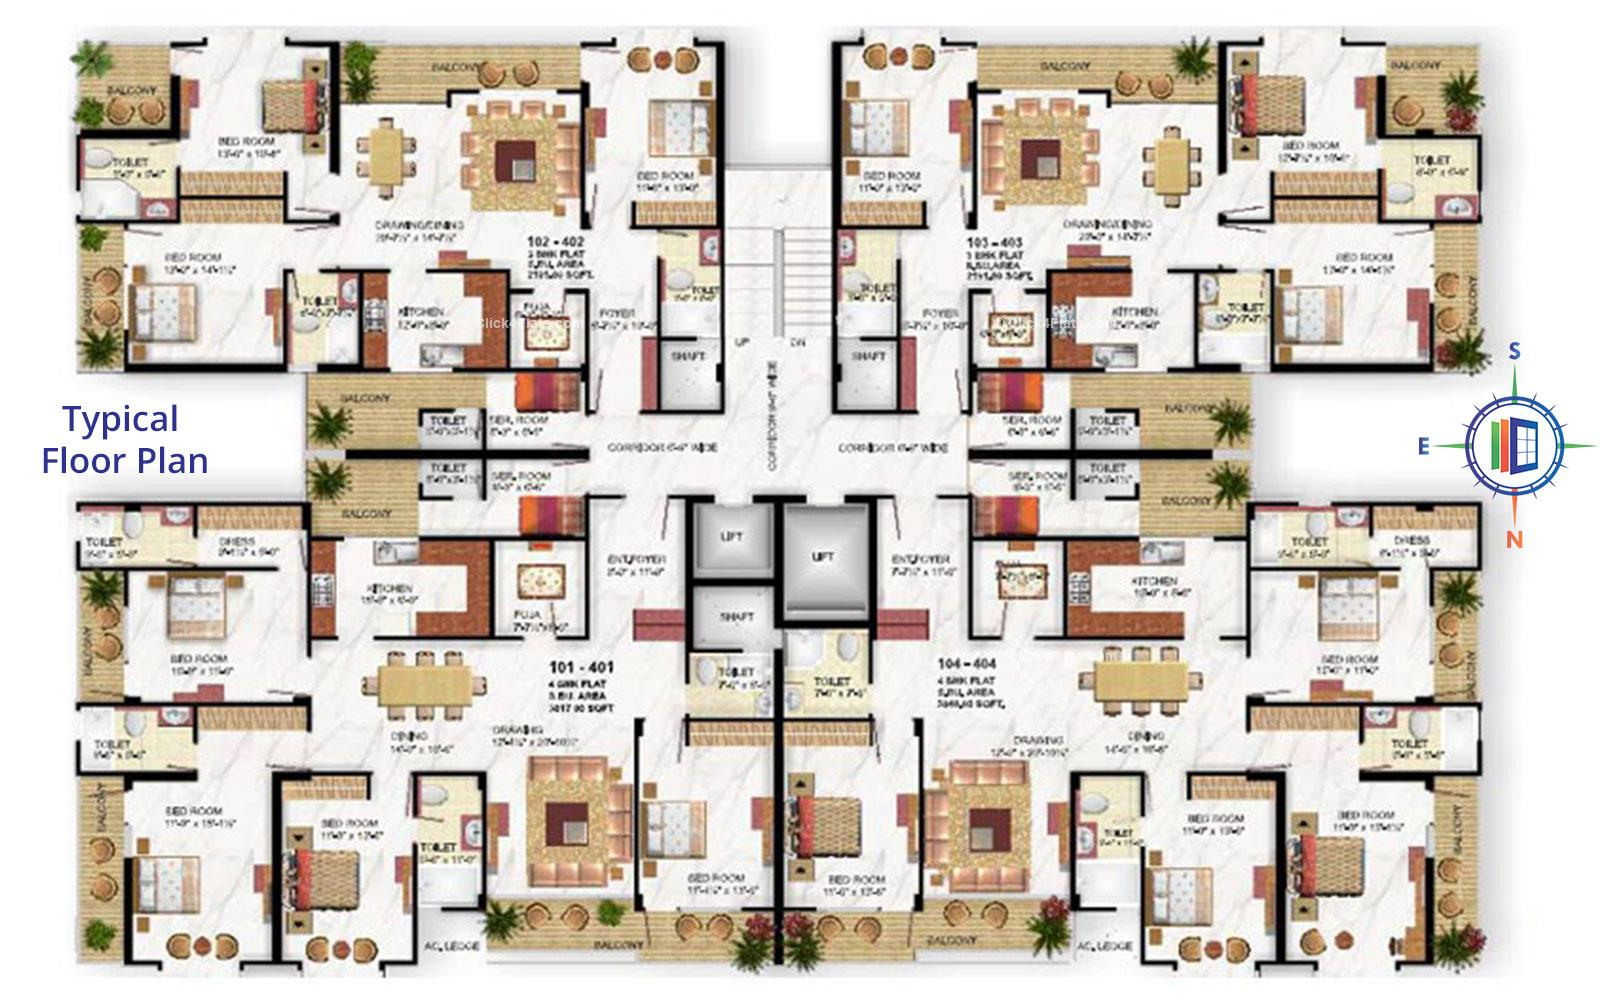 Hari Niwas Typical Floor Plan